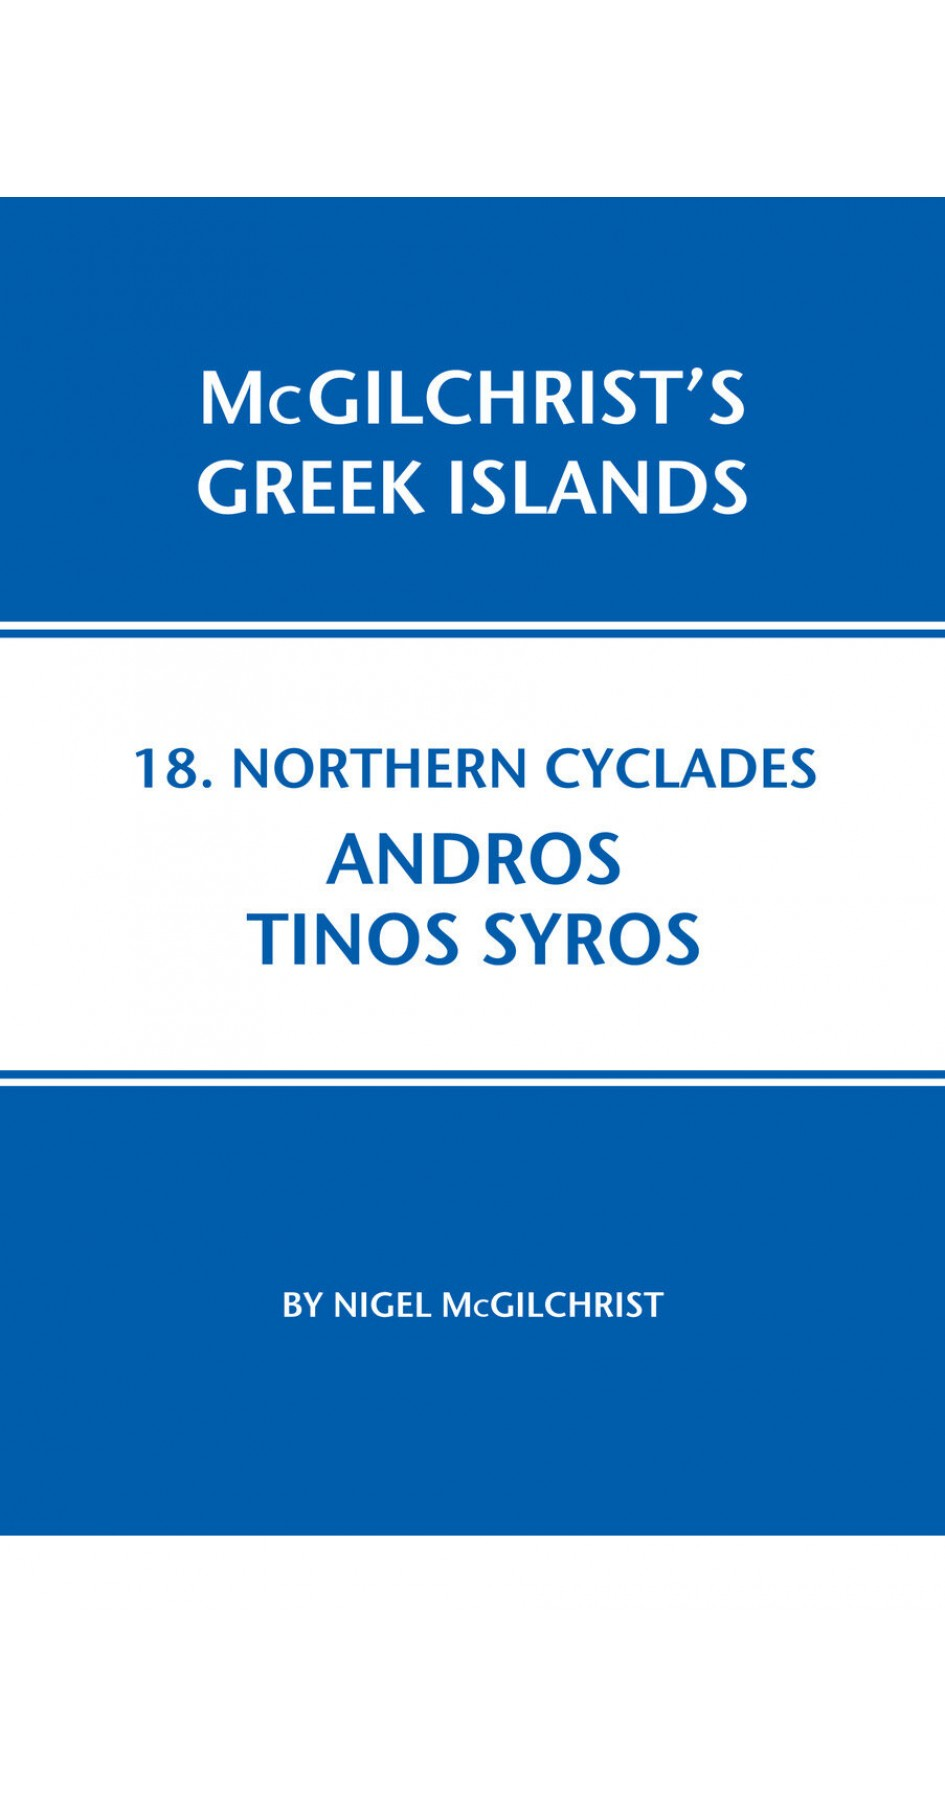 18. Northern Cyclades: Andros, Tinos, Syros - McGilchrist's Greek Islands